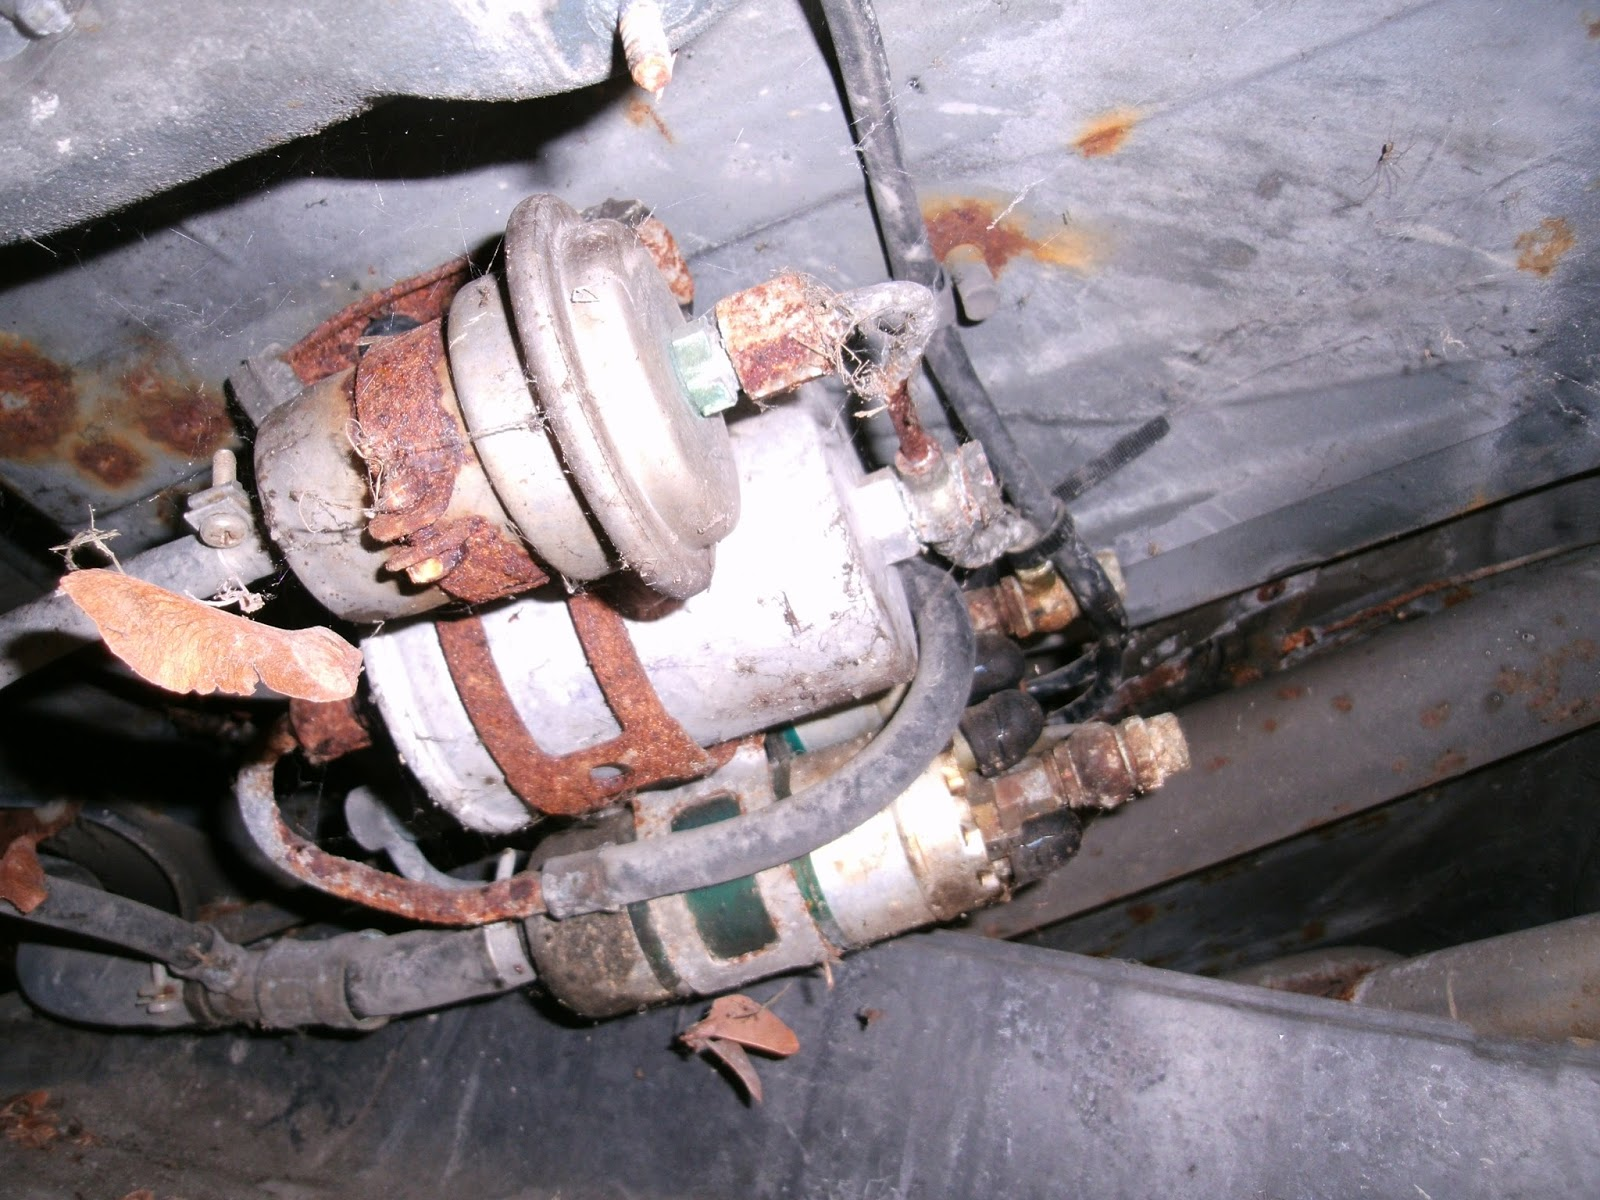 Plan to replace 2 fuel pumps, fuel filter, and fuel accumulator;